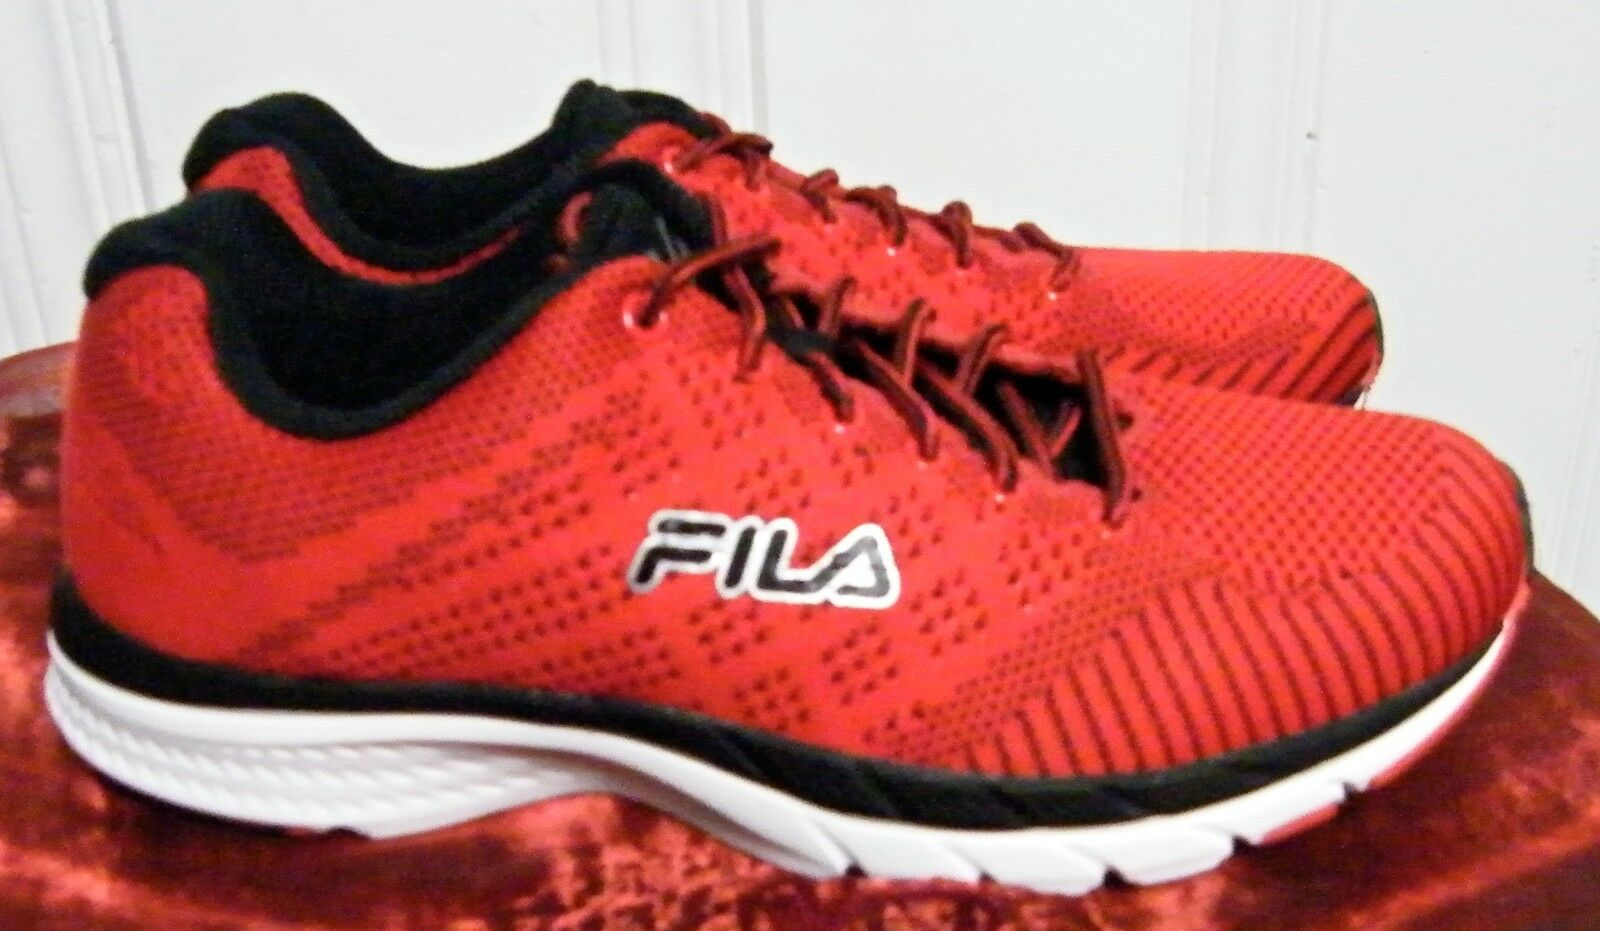 fila shoes red